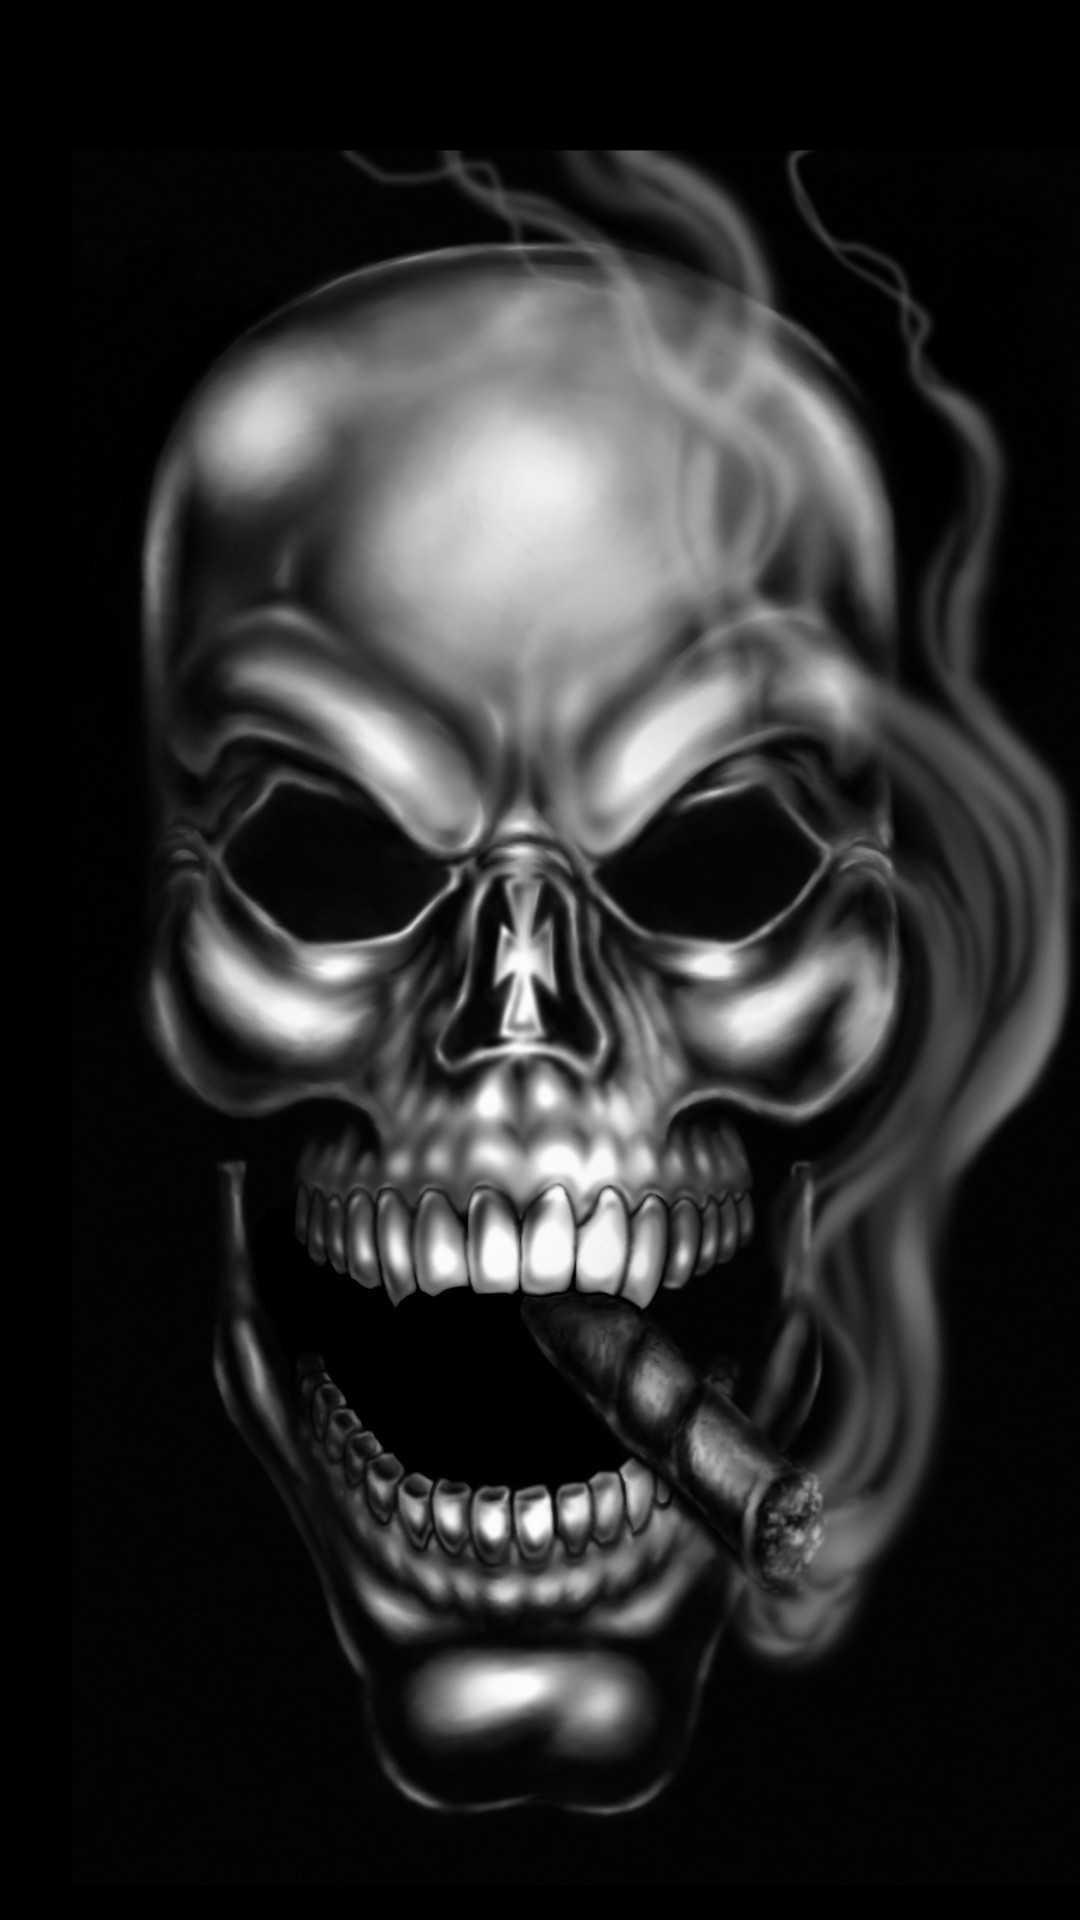 Skull Wallpaper for iPhone  67  images  1080x1920 Wallpaper 257636